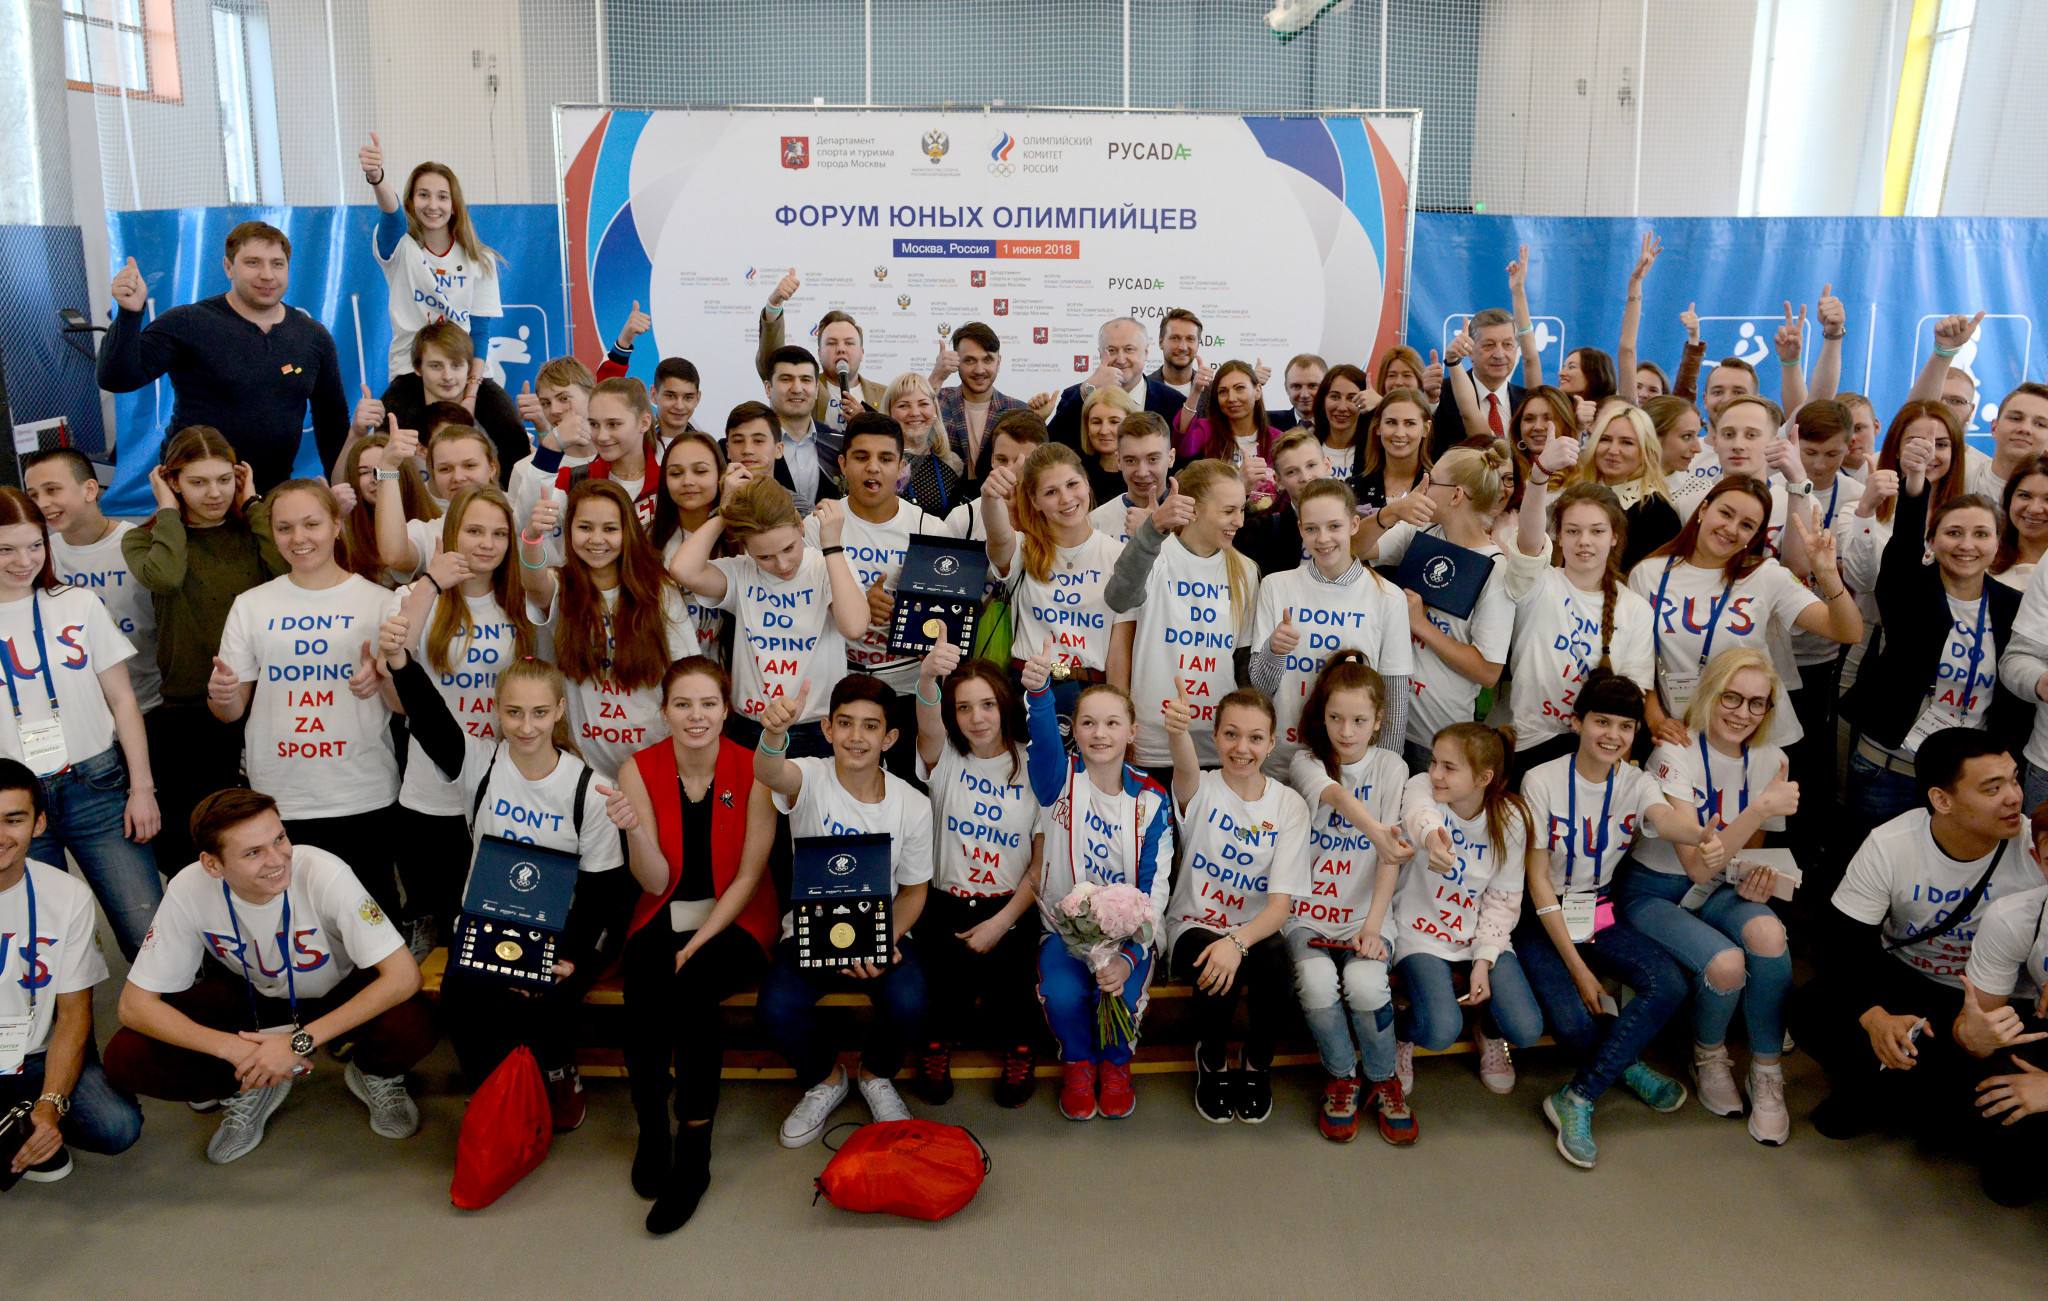 Russian Olympic Committee and RUSADA host Young Olympians forum